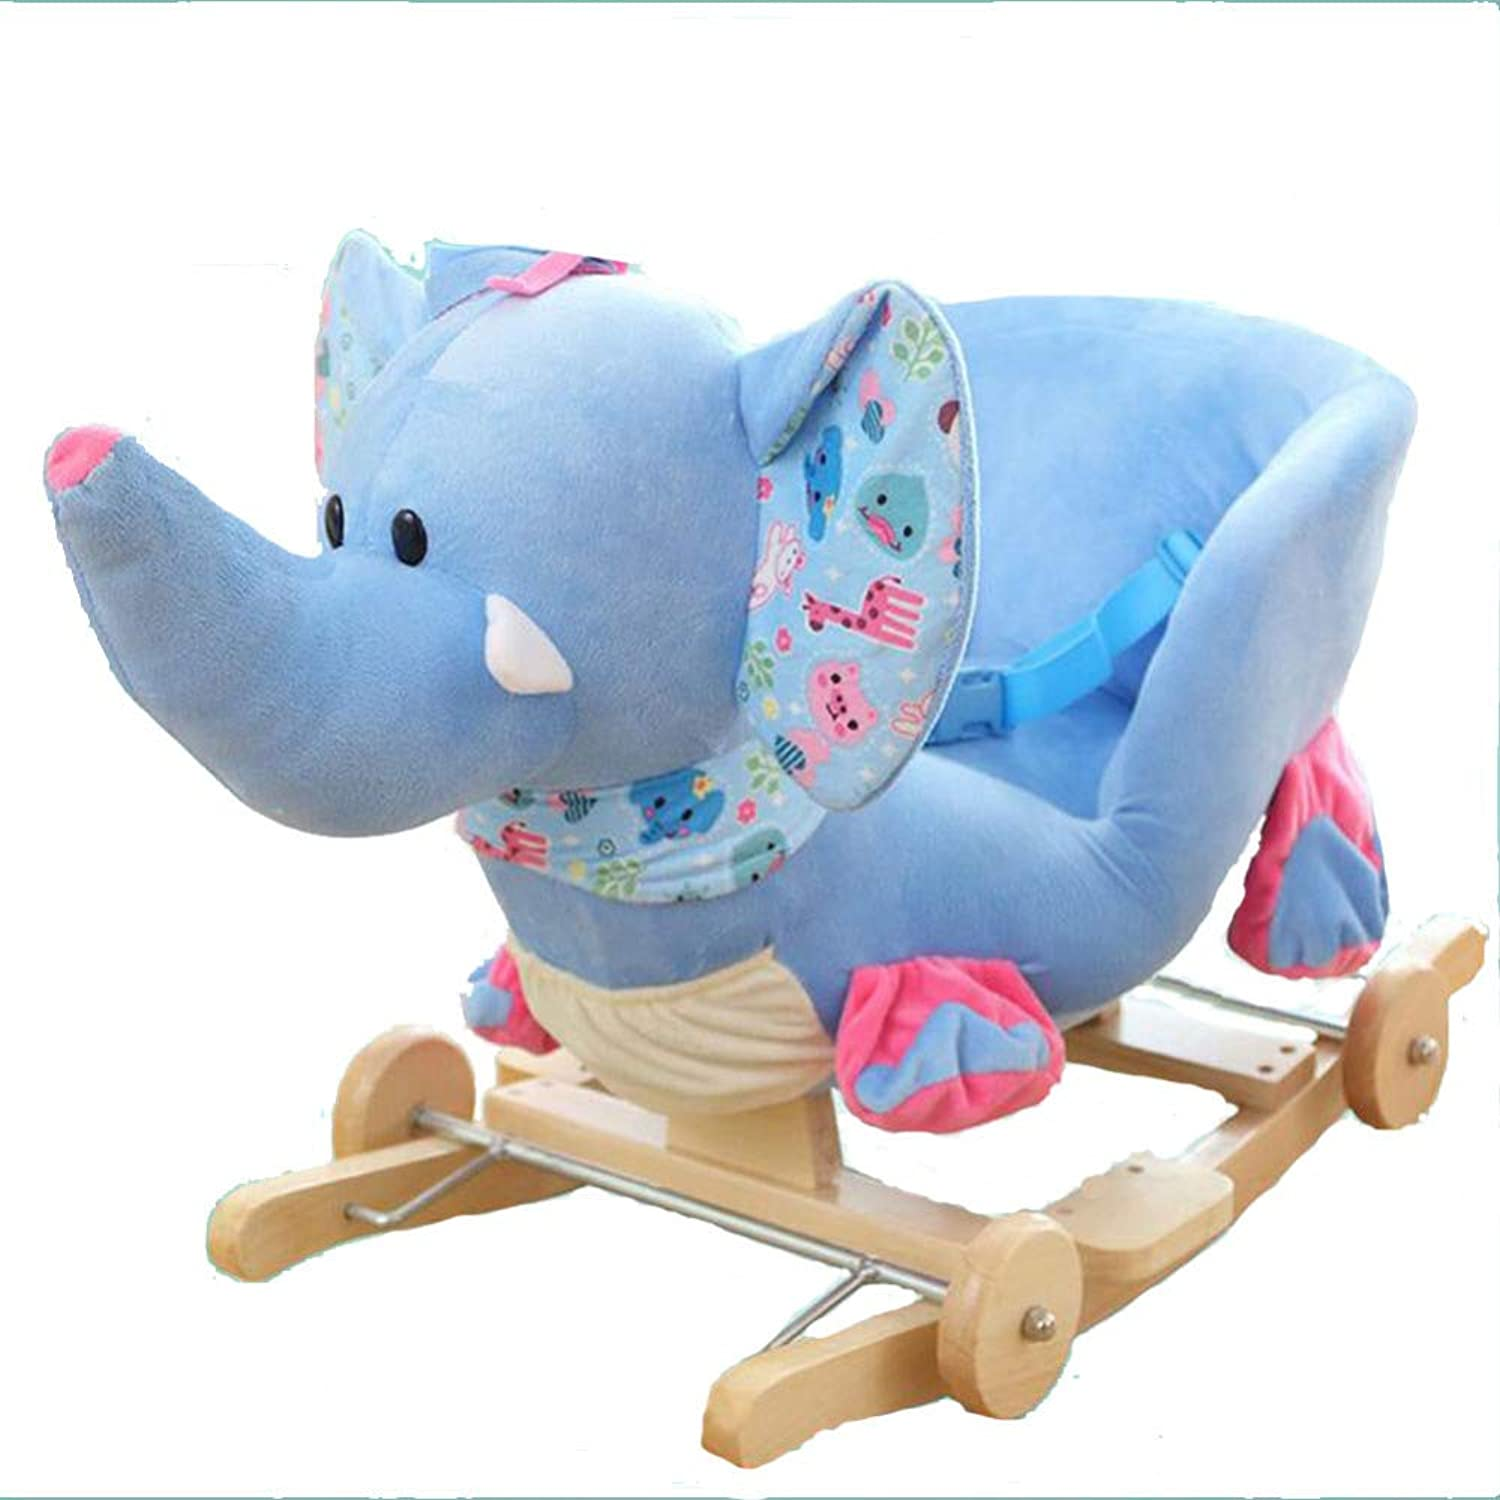 Rocking Horse Wooden, Baby, Ride On Toy For 0-4 Year Old,Girl Baby Rocker,Plush, Riding Horse Toy,Lightbluee